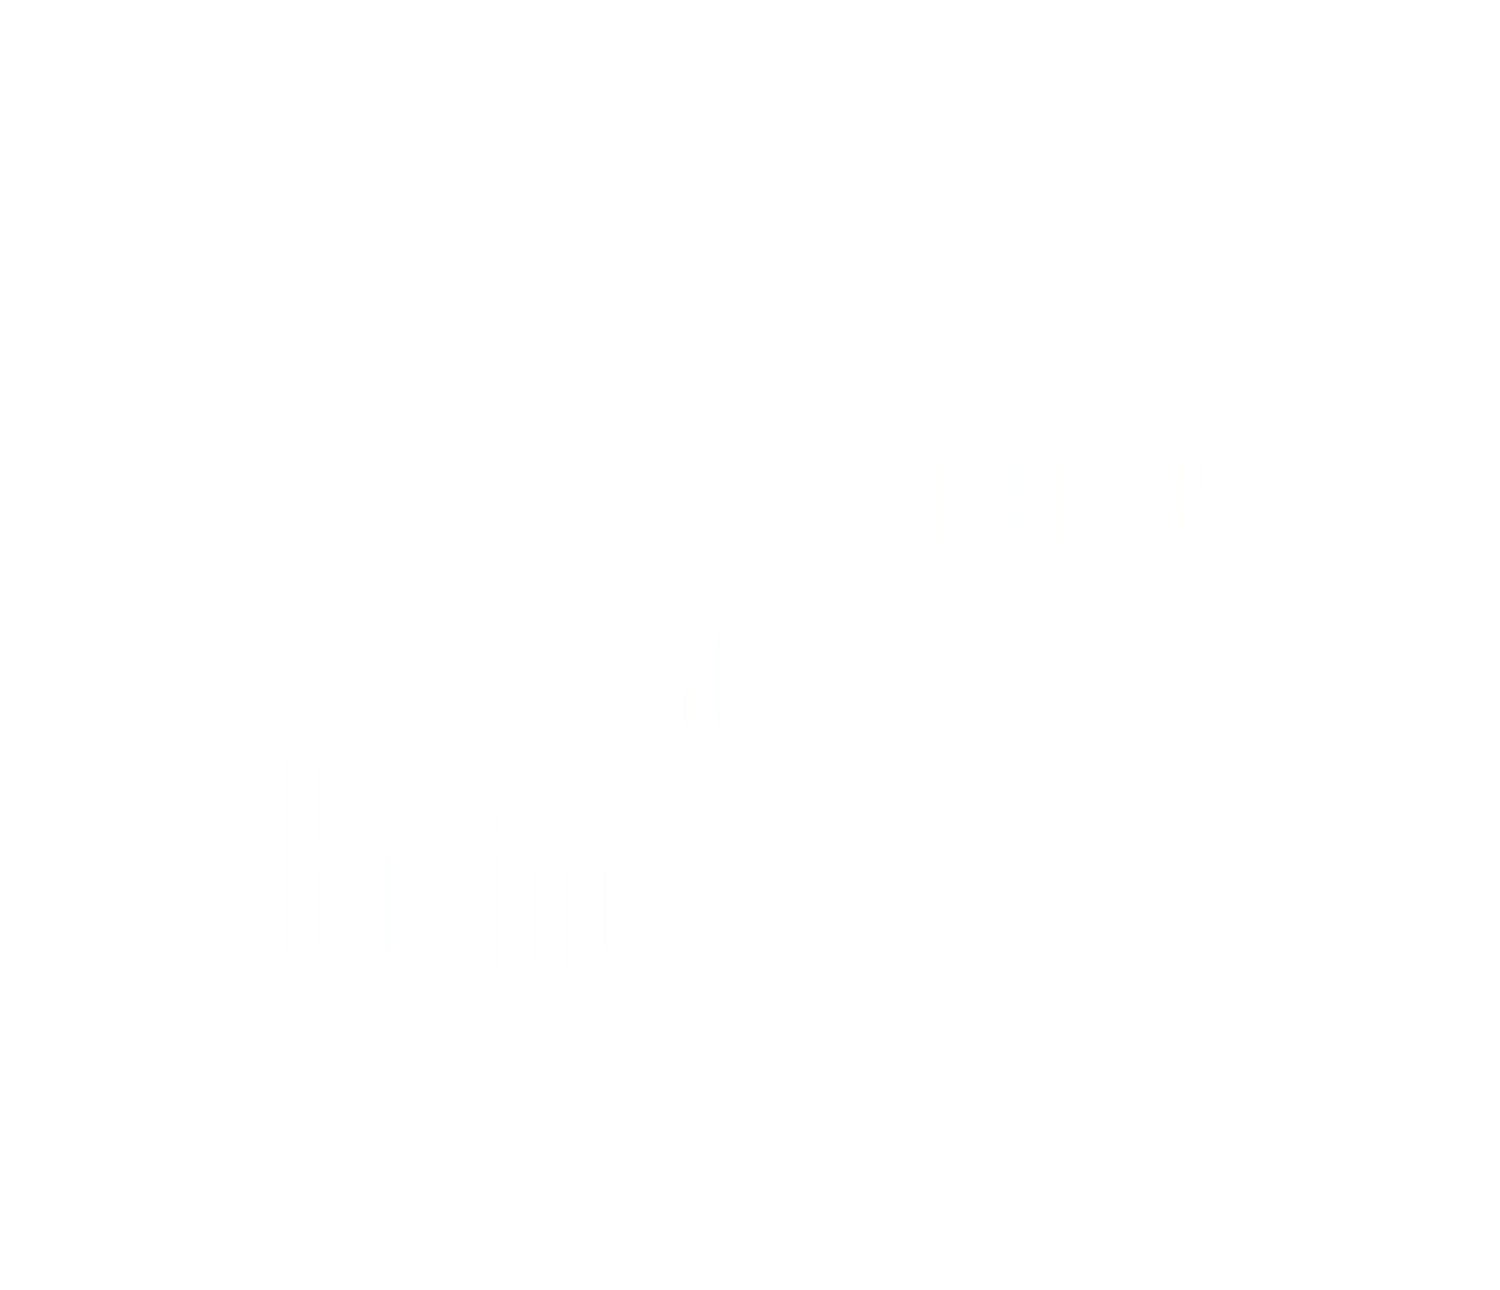 Business Of Finance